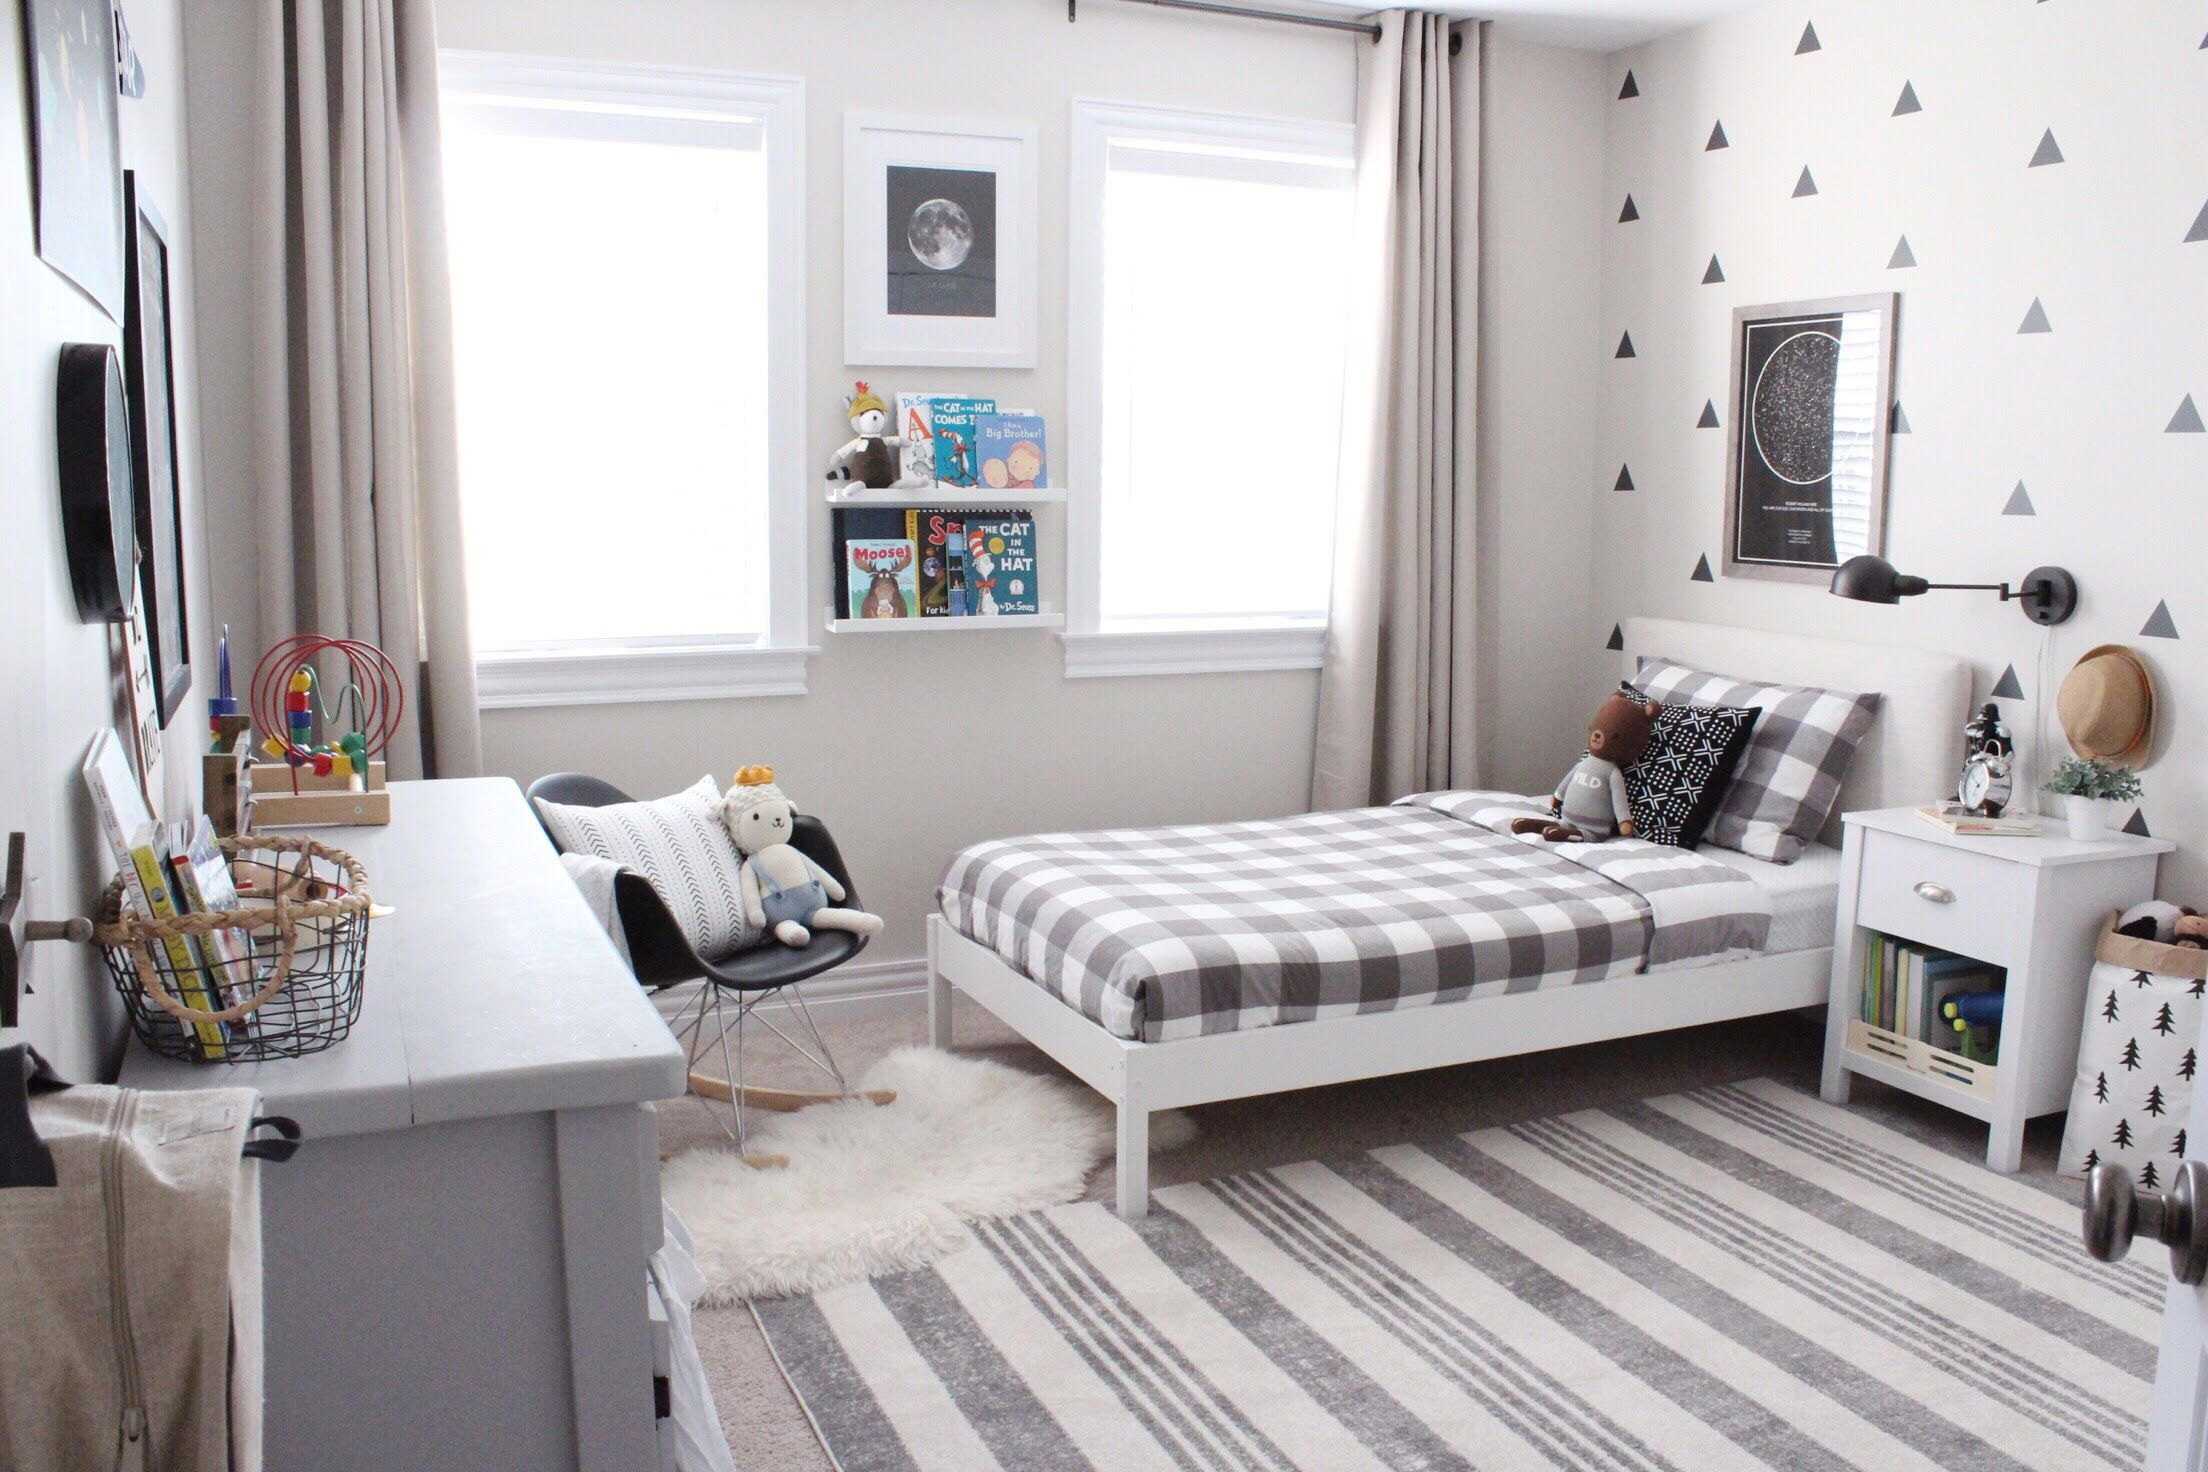 Project Nursery Black and White Boy's Room with Solar